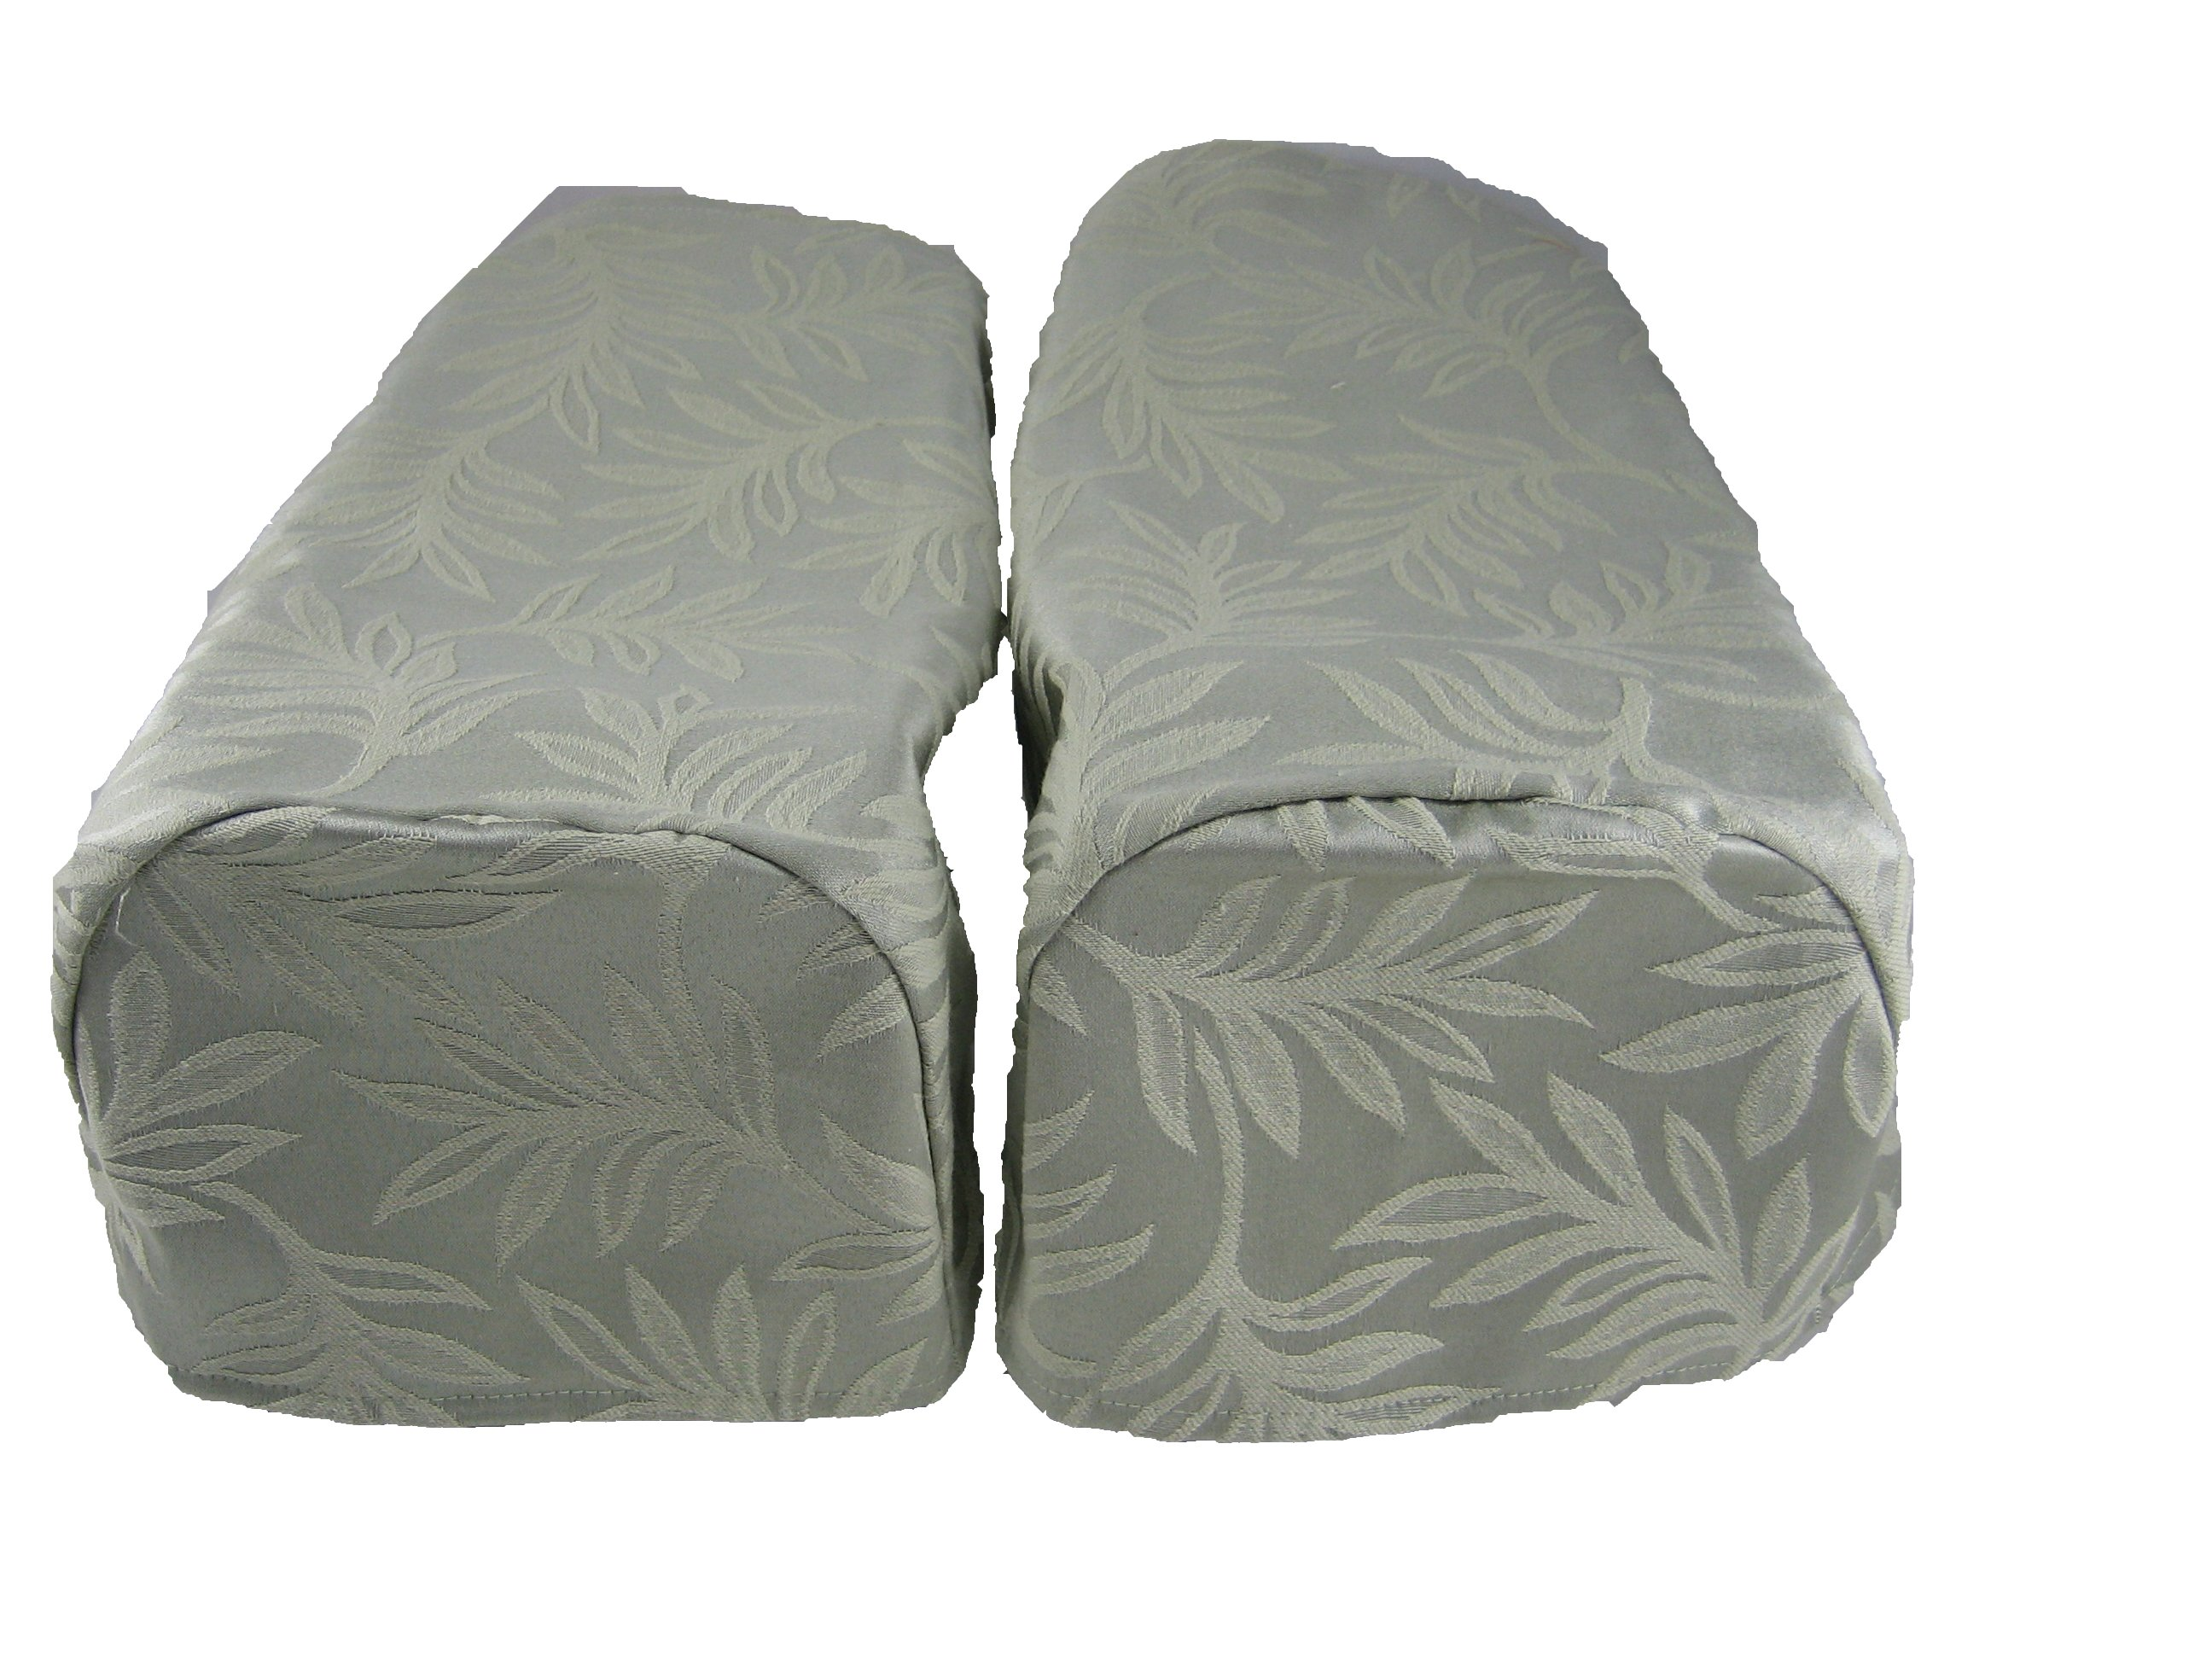 decorative chair covers heavy duty folding camping chairs 2 x settee arm cap green pair ebay